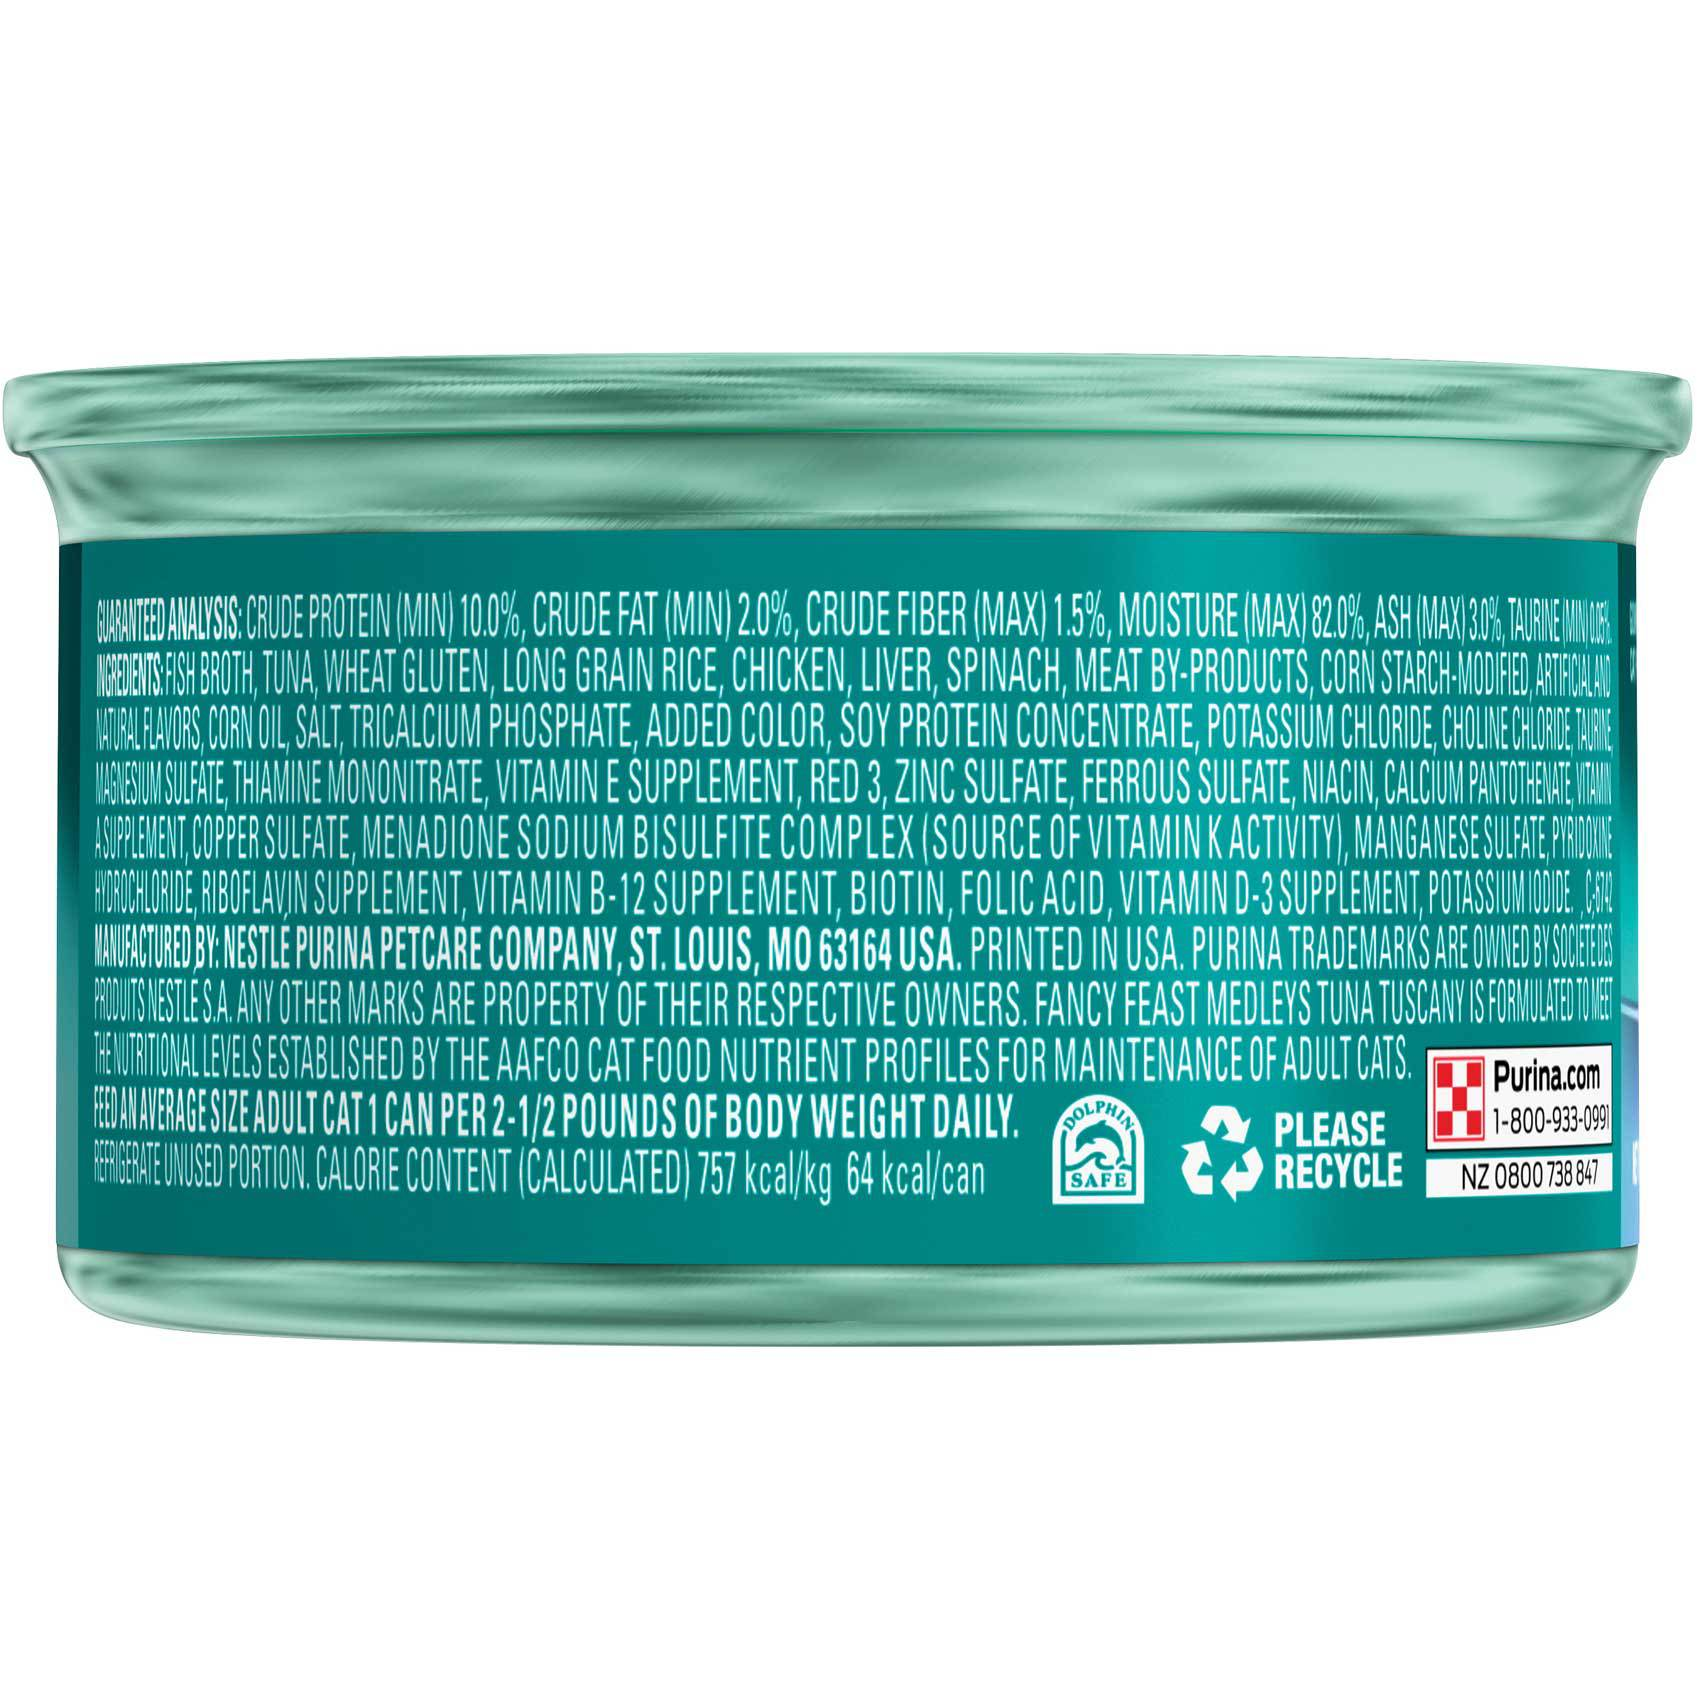 FANCY FEAST MEDLEYS TUNA&RICE85G